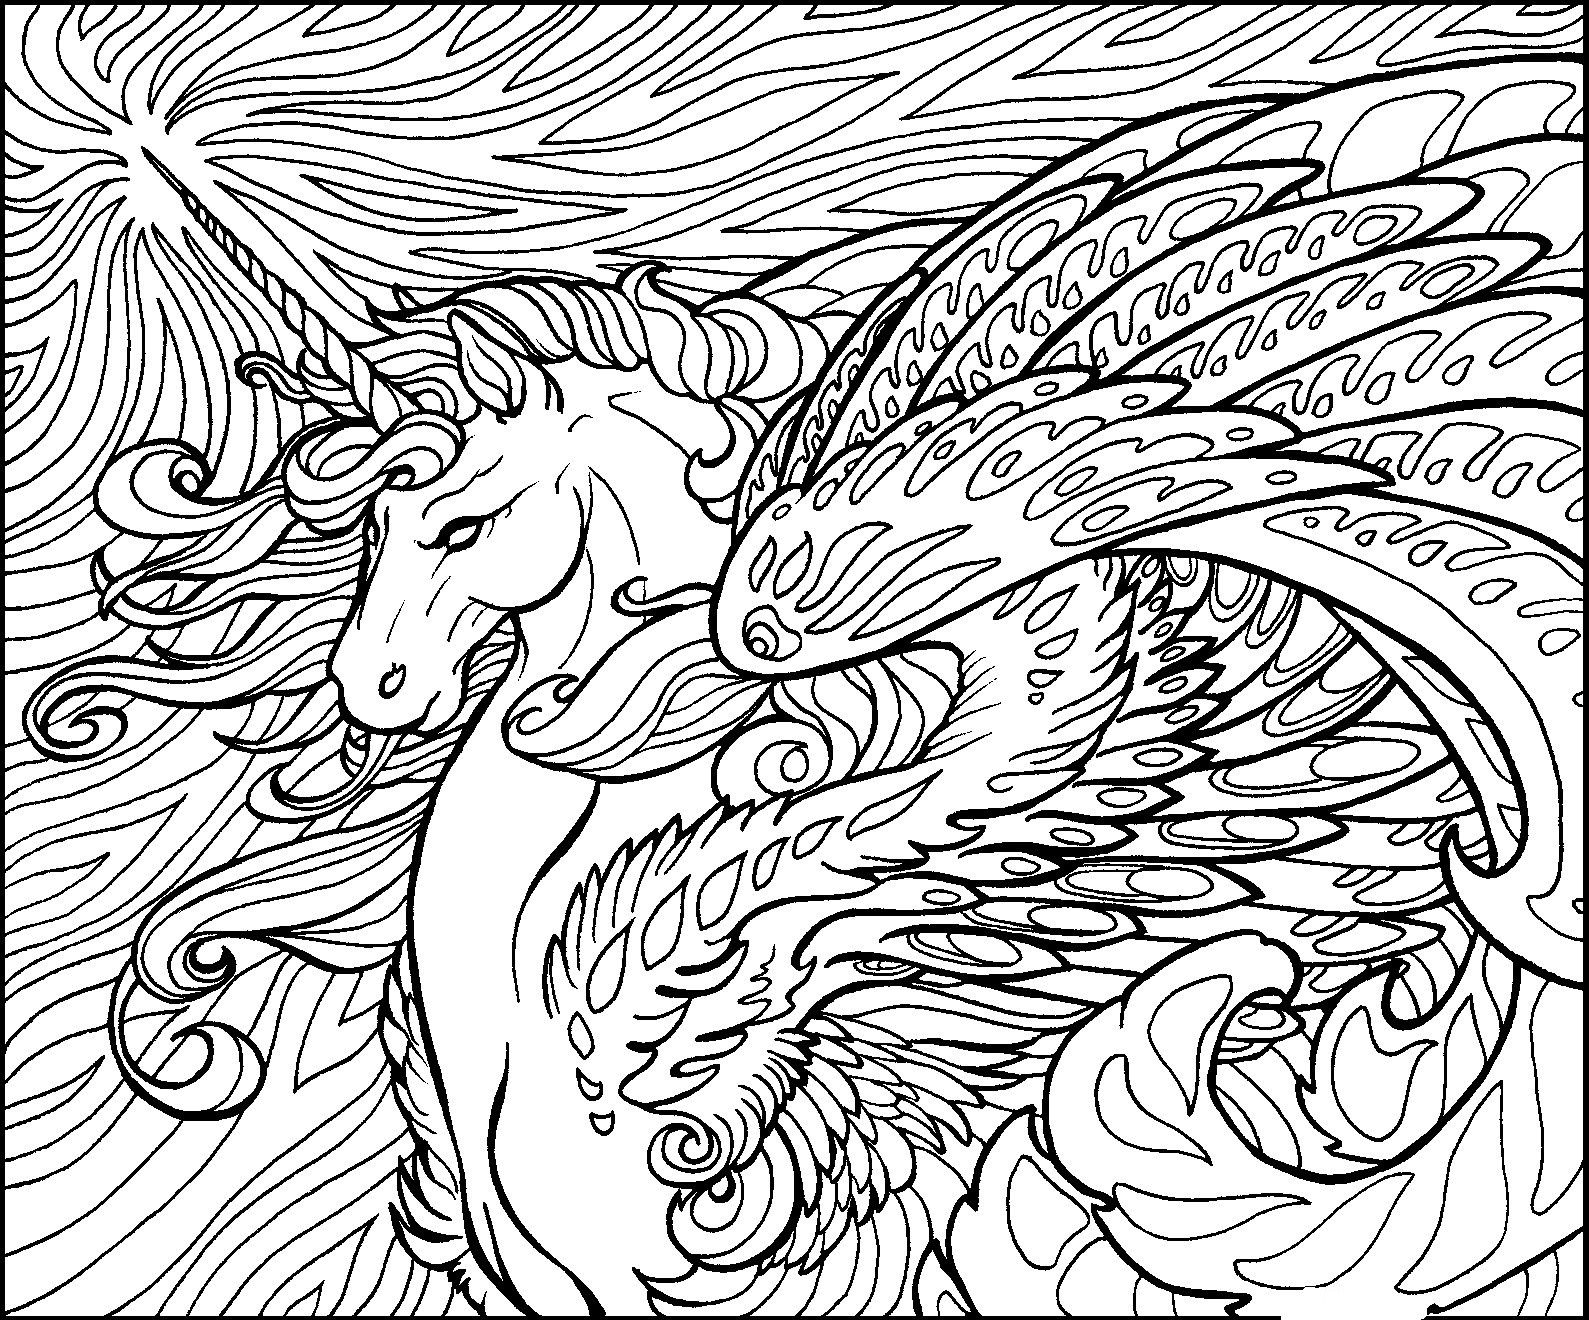 Detailed Coloring Pages For Adults Coloring Home Detailed Coloring Pages For